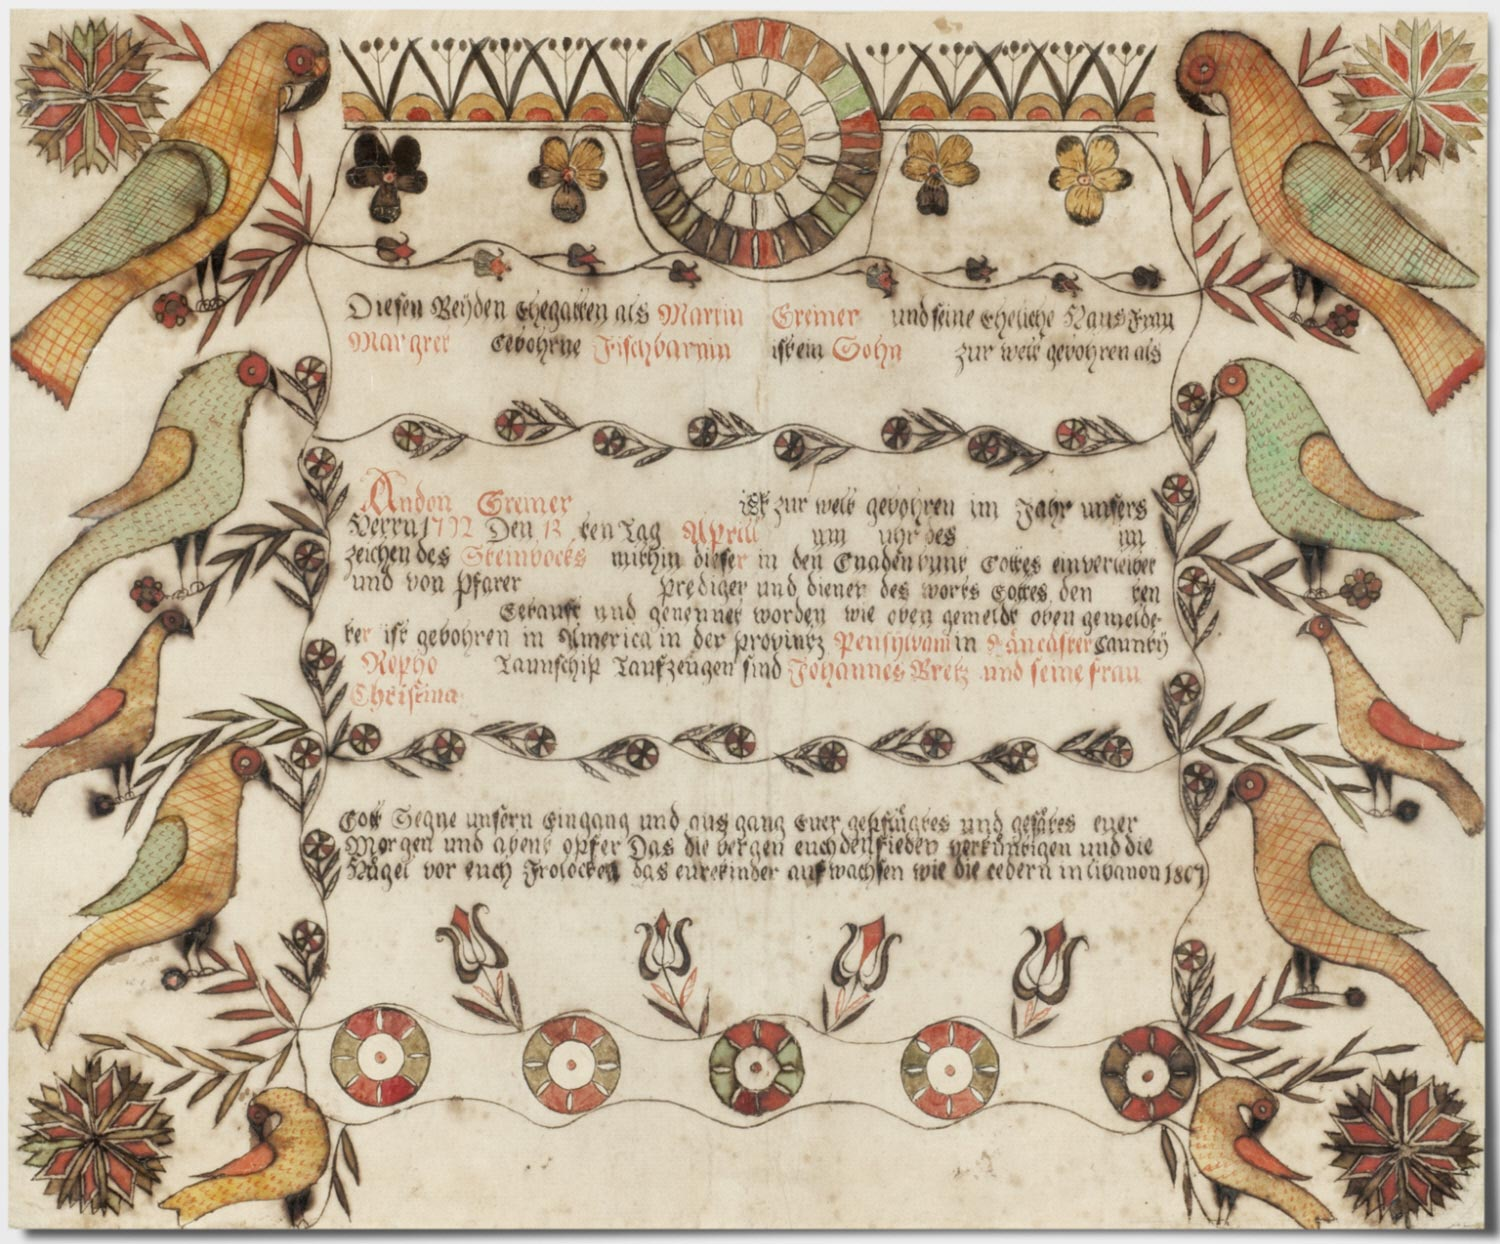 Birth and Baptismal Certificate for Andon Greiner (born April 13, 1792)